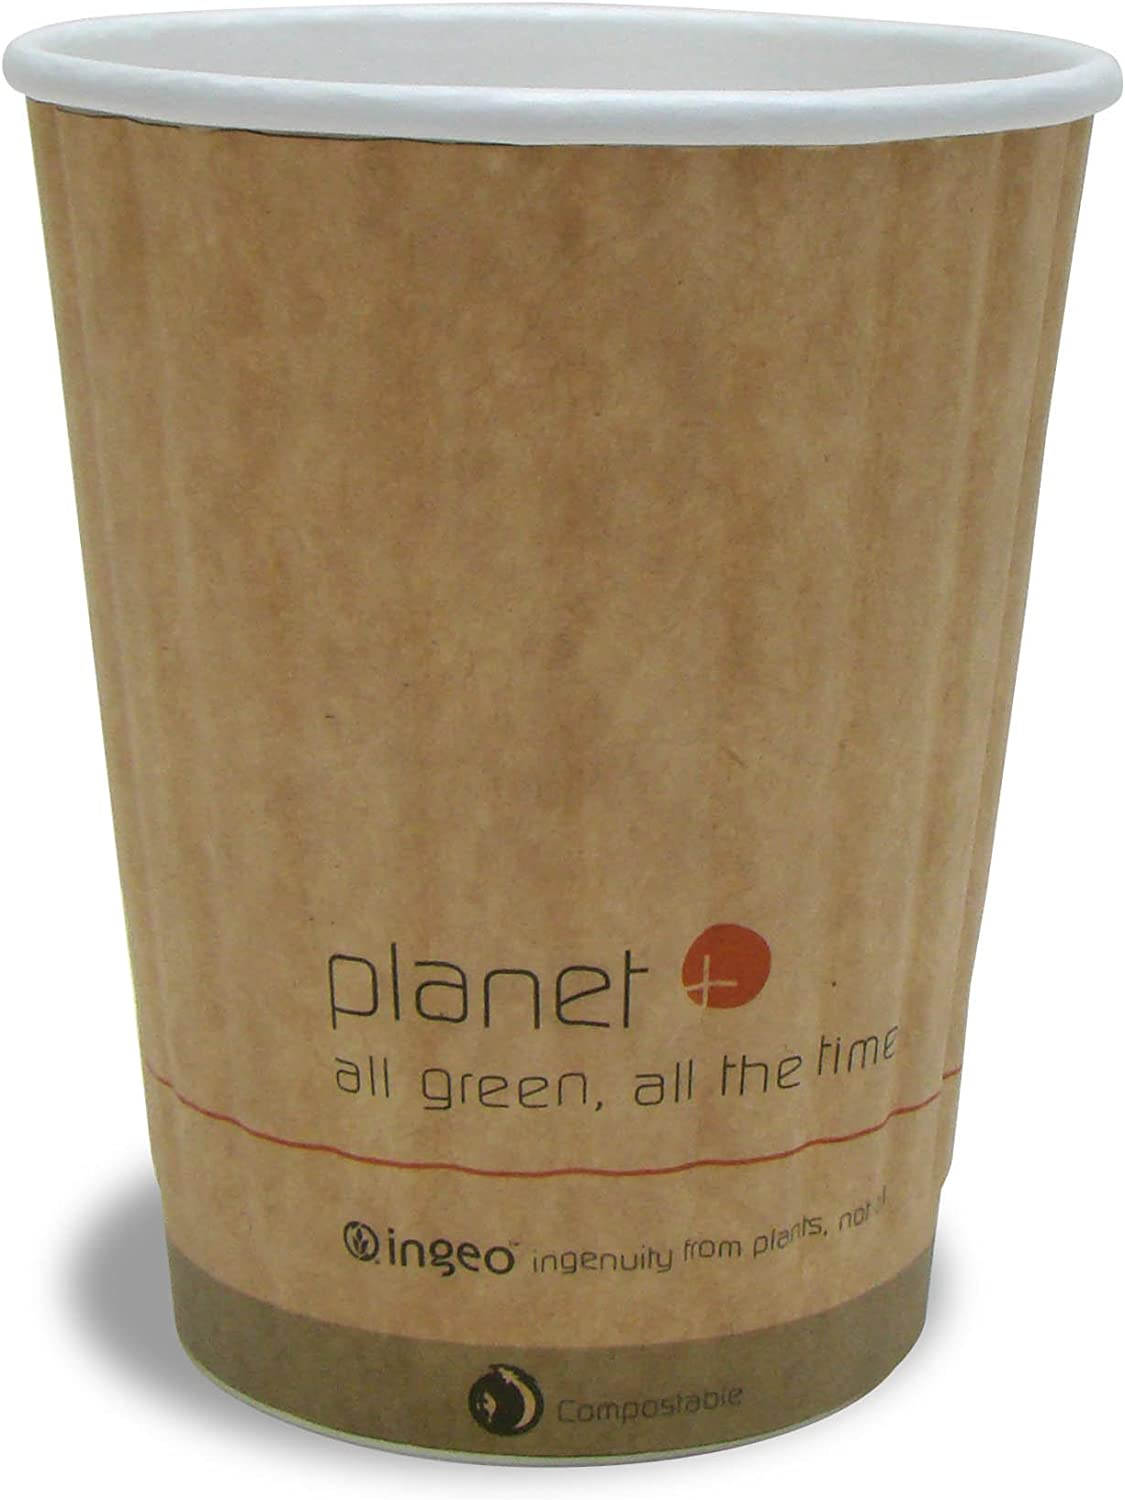 Planet+ 100% Compostable PLA Laminated Double-Wall Insulated Hot Cup, 12-Ounce, 1000-Count Case (PLC-12-DW)